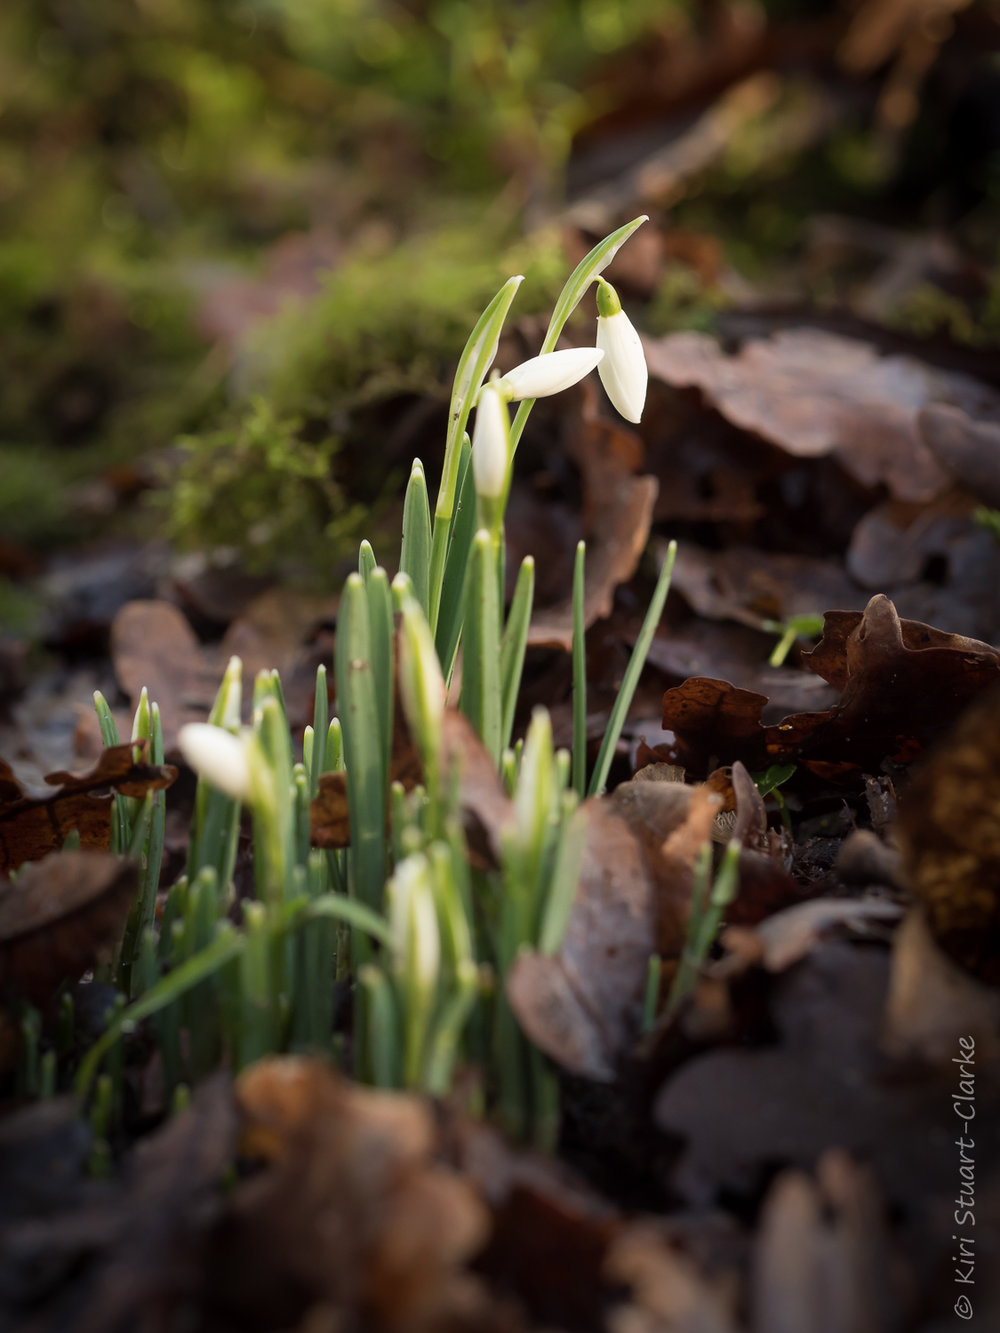 Snowdrops nestled amongst leaves